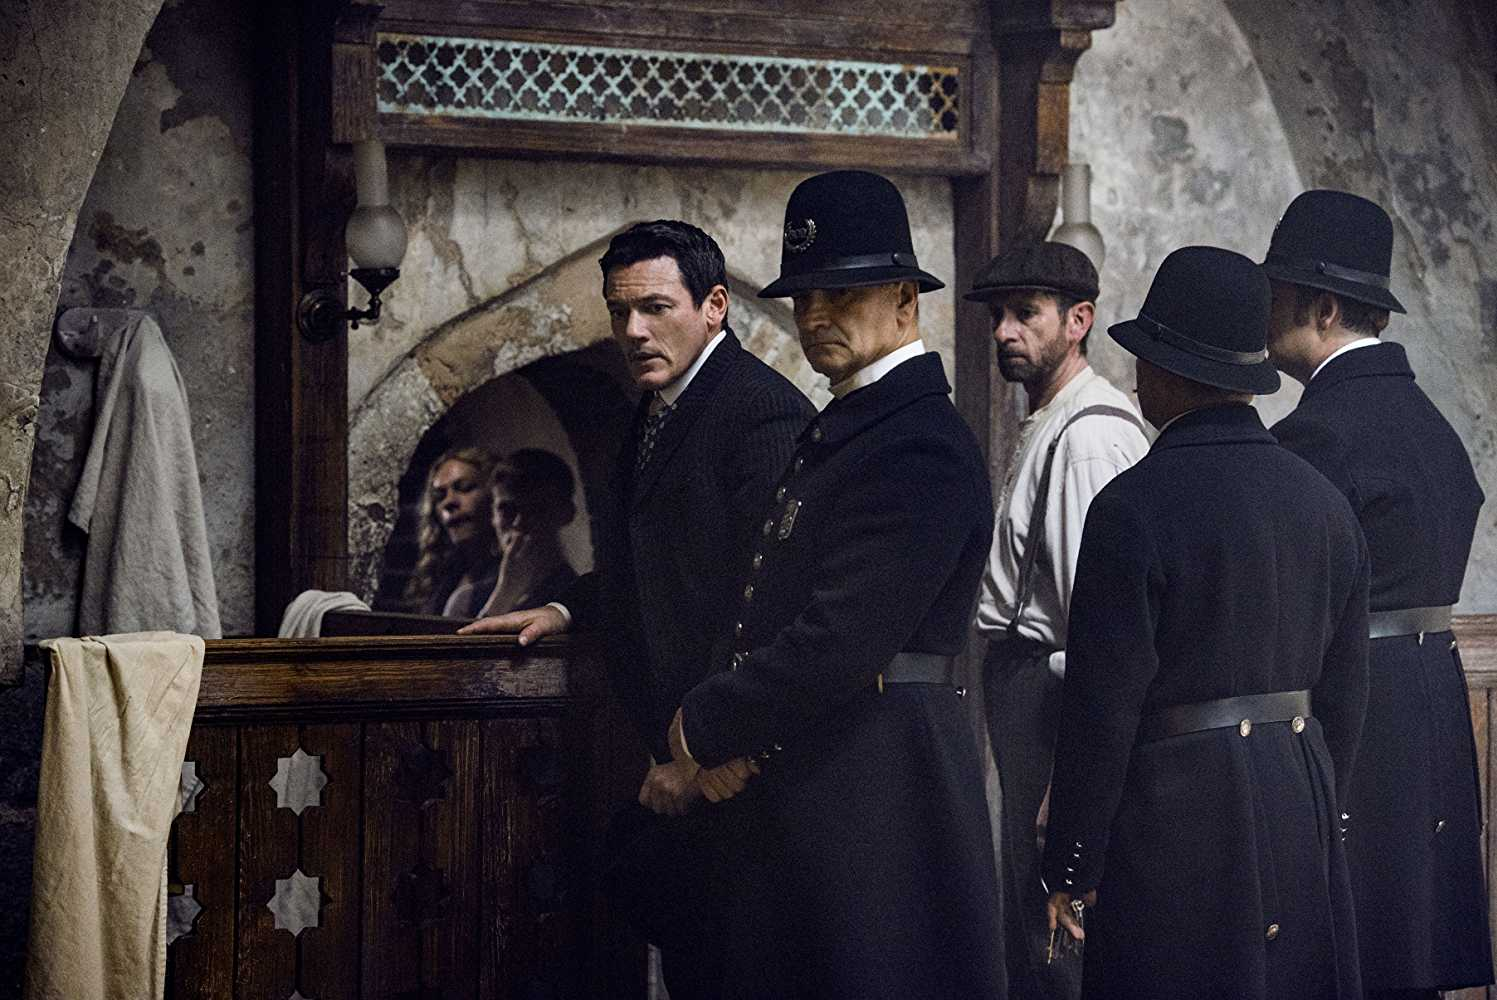 Season 1 of 'The Alienist' premiered in January (Source: IMDb)